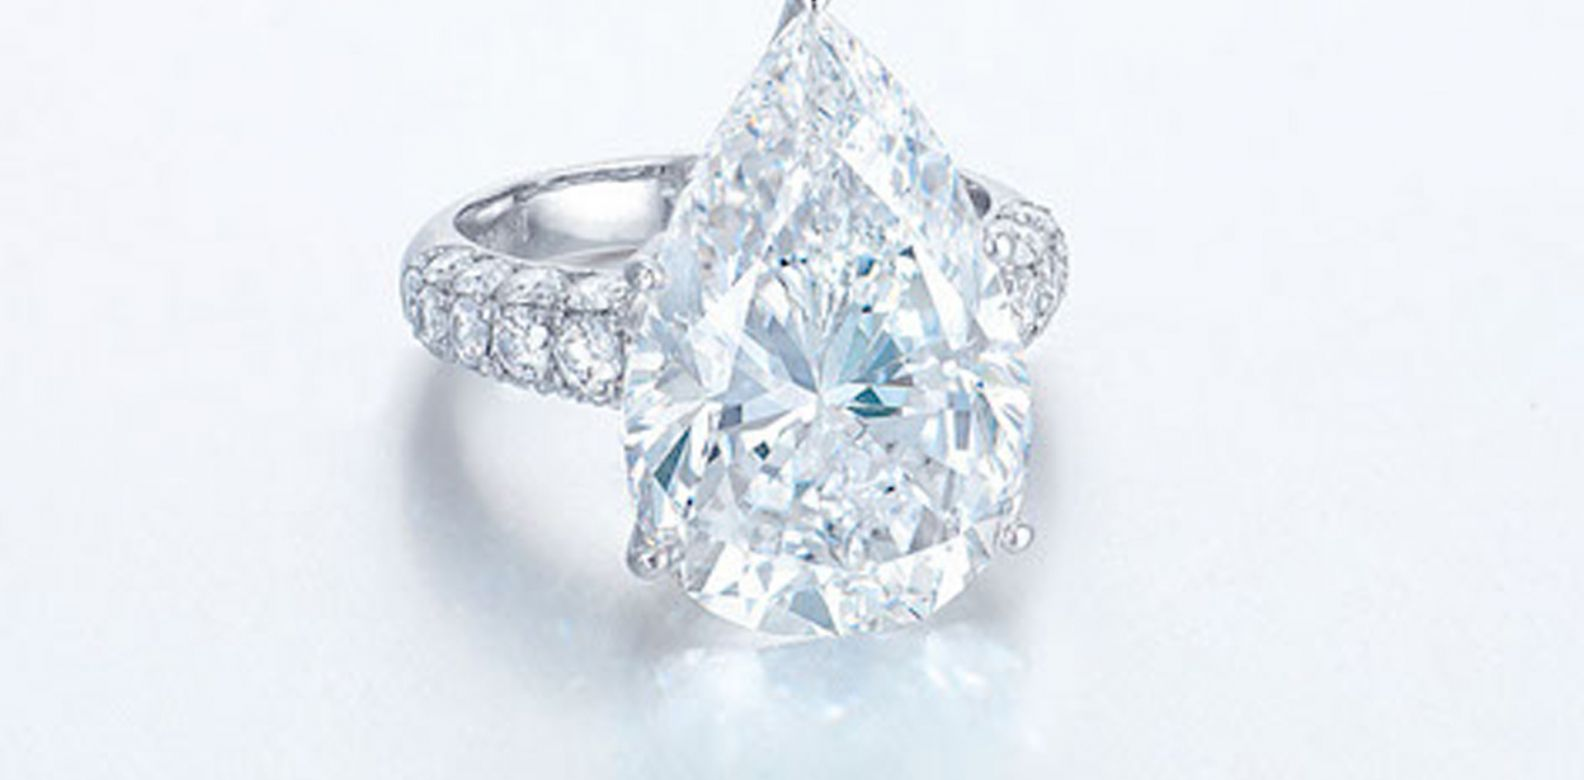 Pear-shaped diamond ring. (Photo: Courtesy of Christie's)